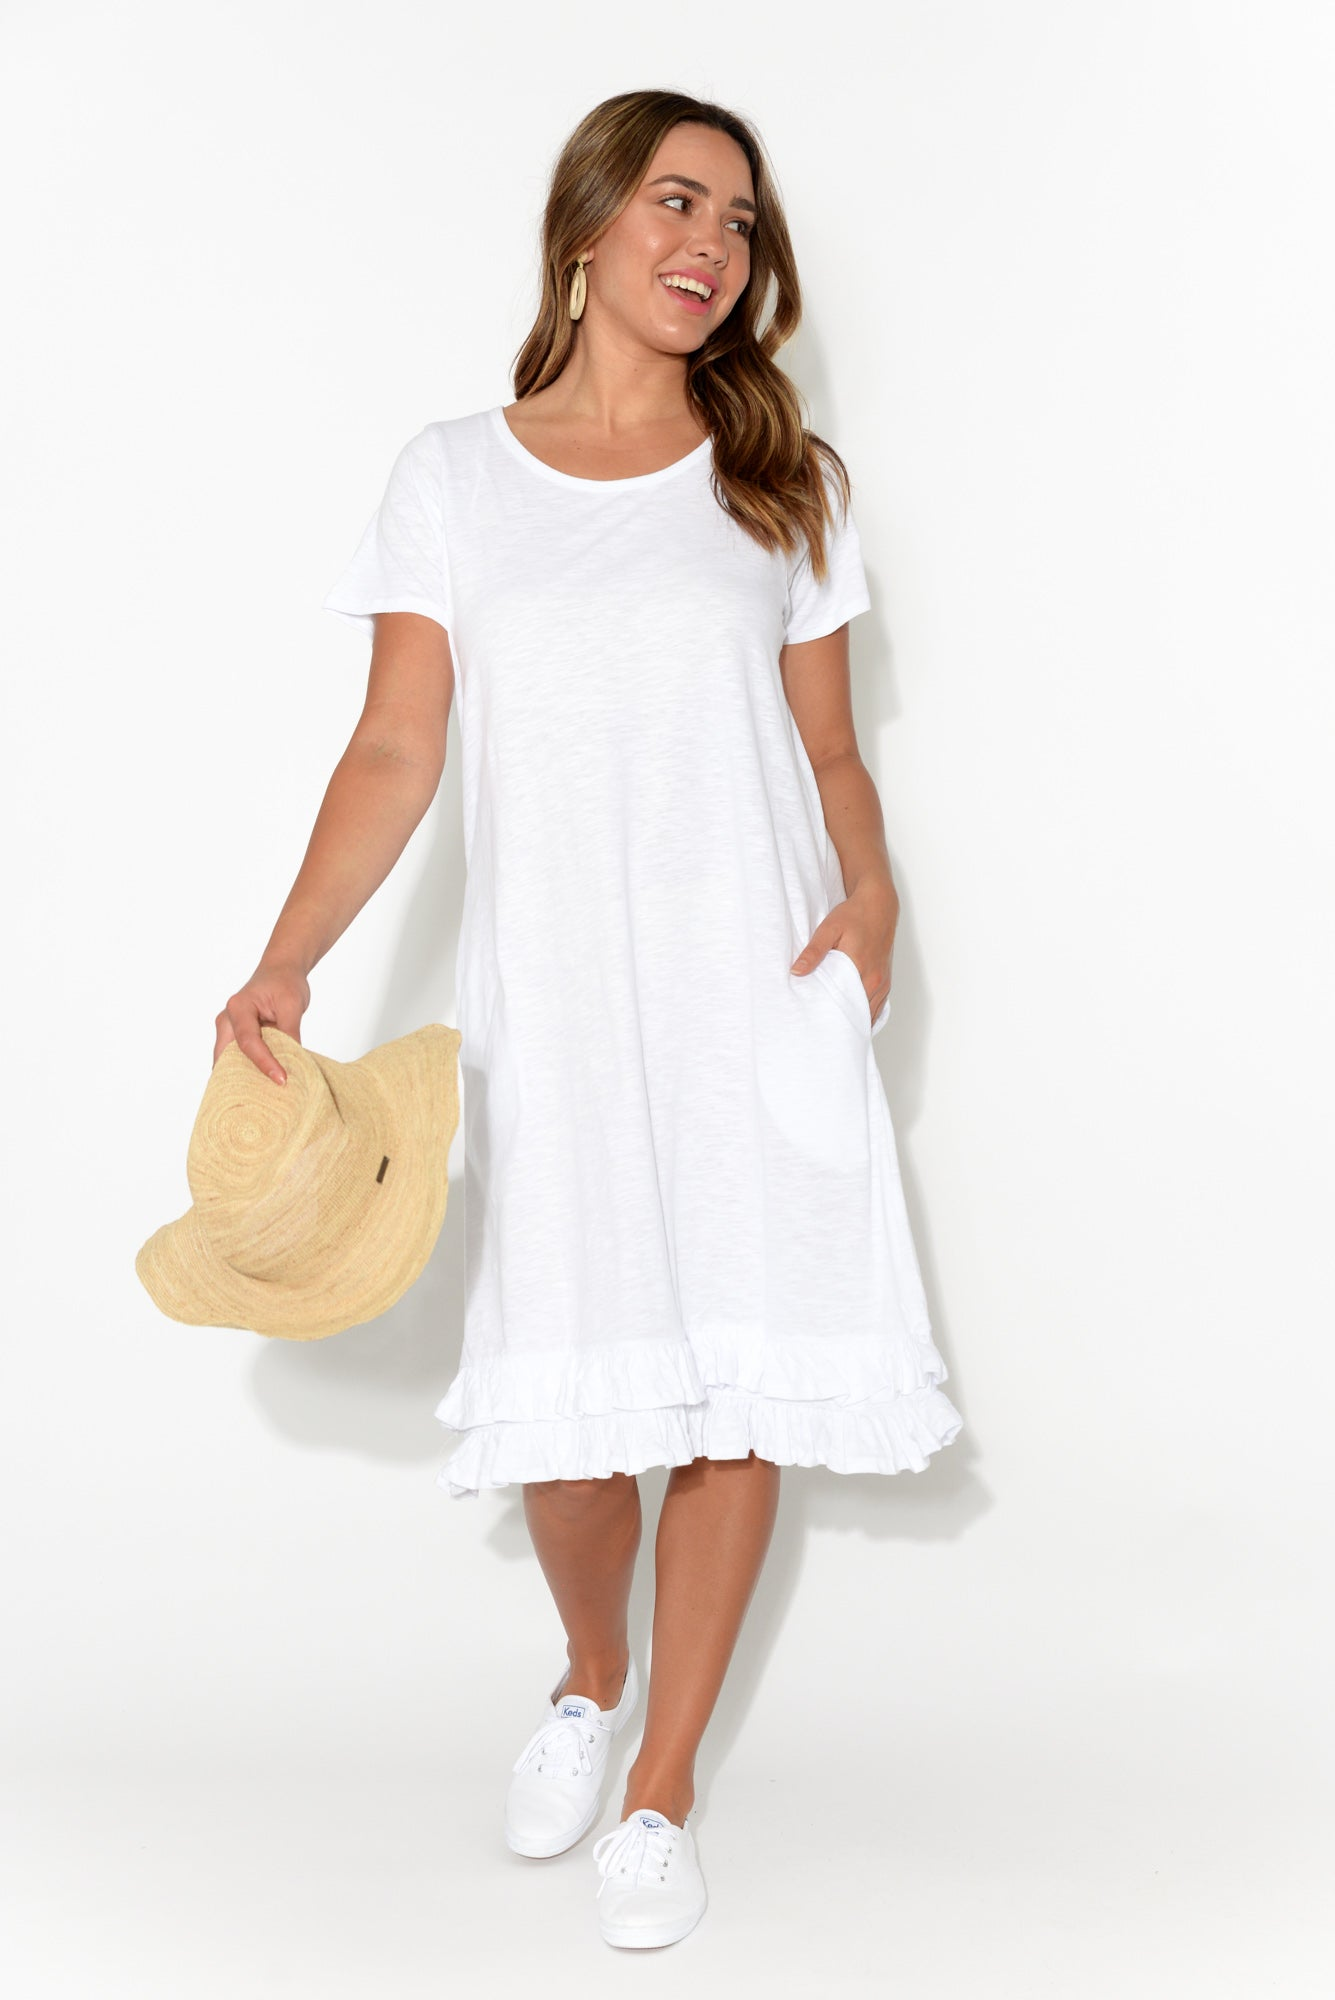 Amber White Cotton Frill Dress